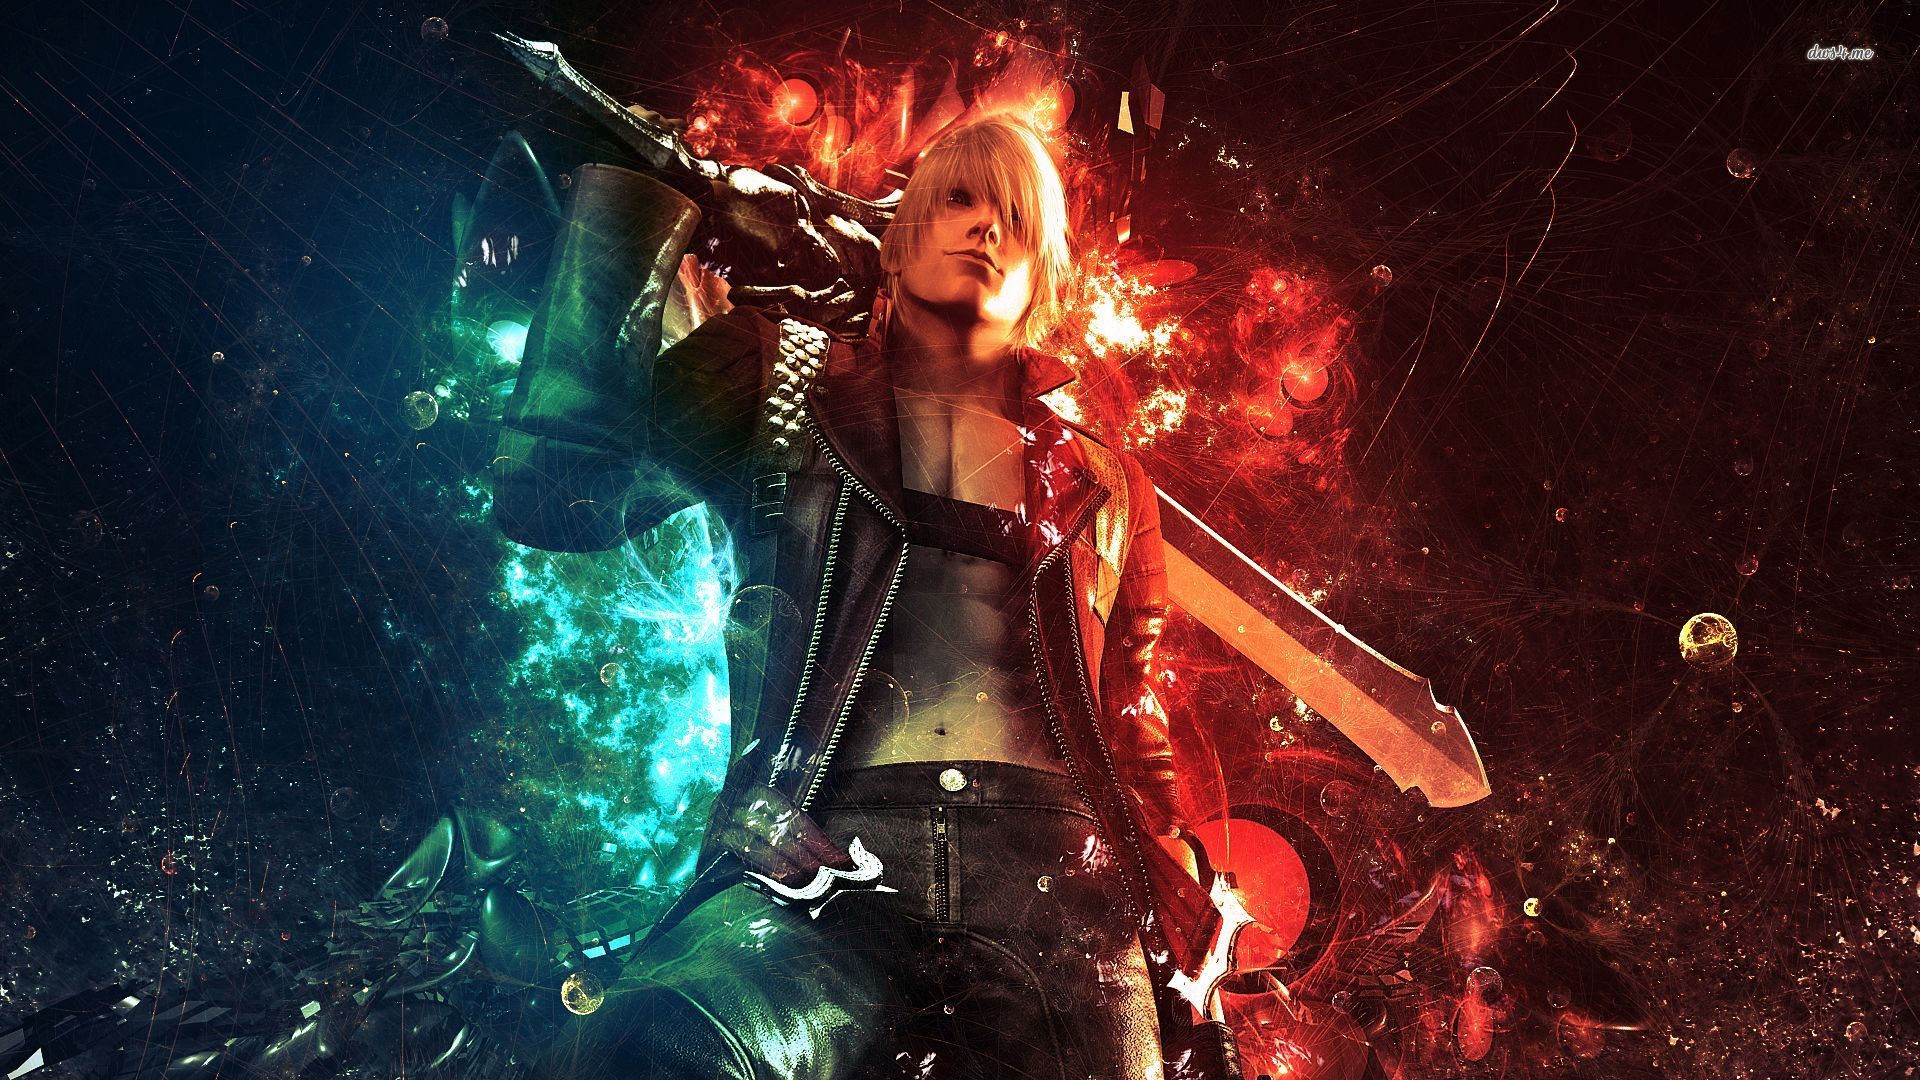 wallpapers devil may cry - photo #17